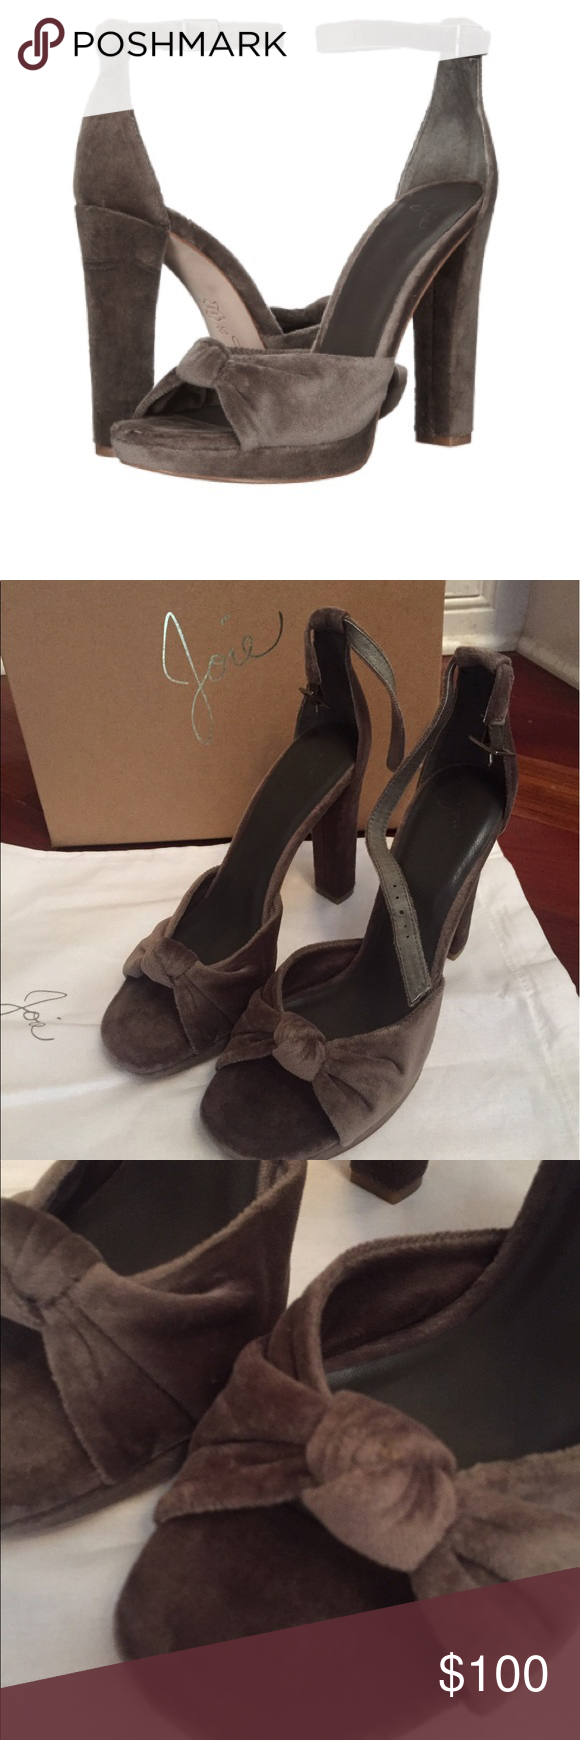 b2268164f46 NWT Joie Nabila Ash Green Velvet Sandals Heels Size 8.5! Velvet and super  cute for fall  ) New in box! Joie Shoes Heels